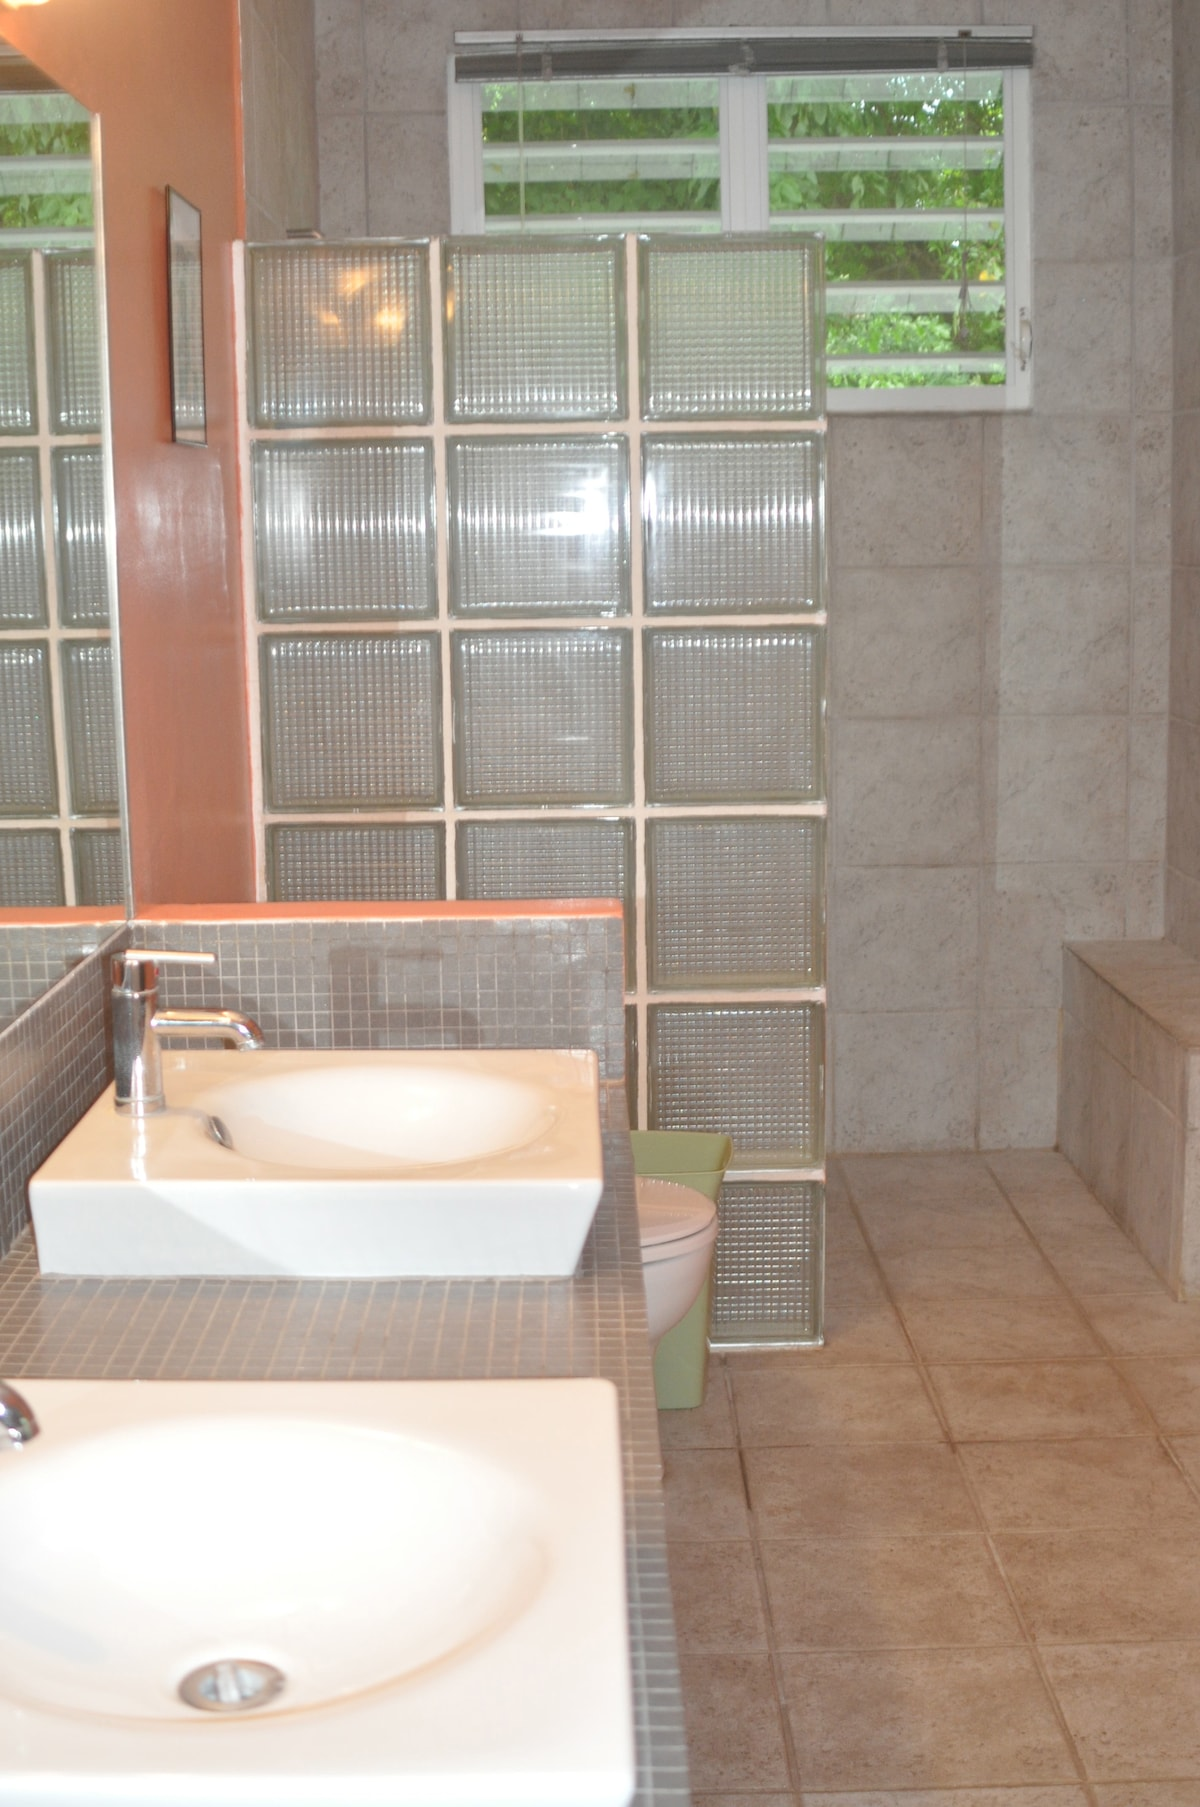 Master bathroom with two sinks and a walk-in shower